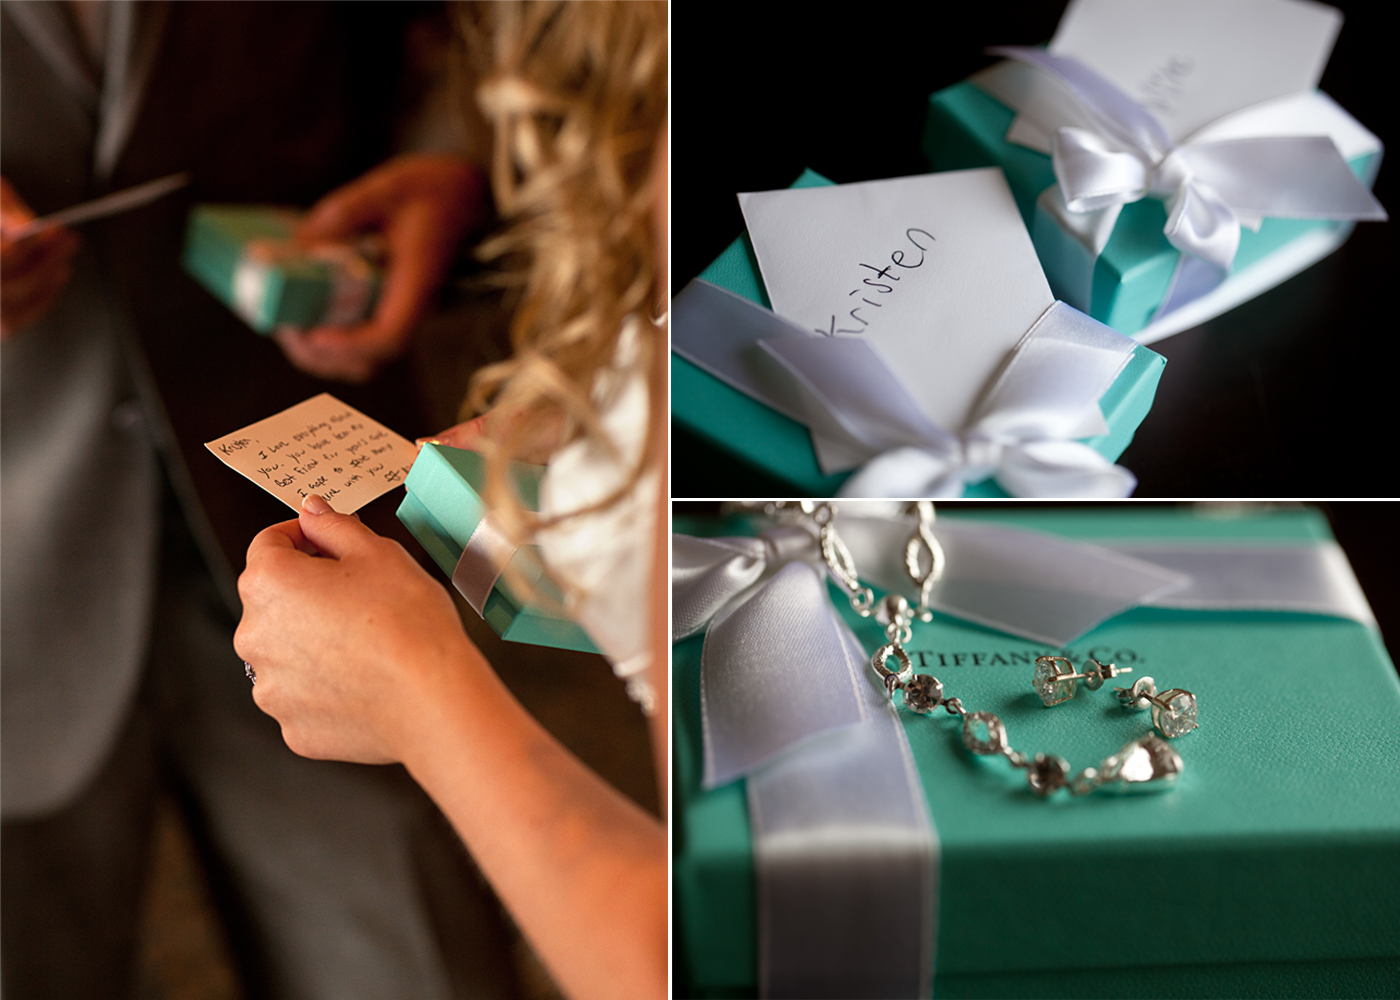 Wedding Gift For Groom From Groom : ... bridal bracelet, bride and groom exchange wedding gifts OneWed.com